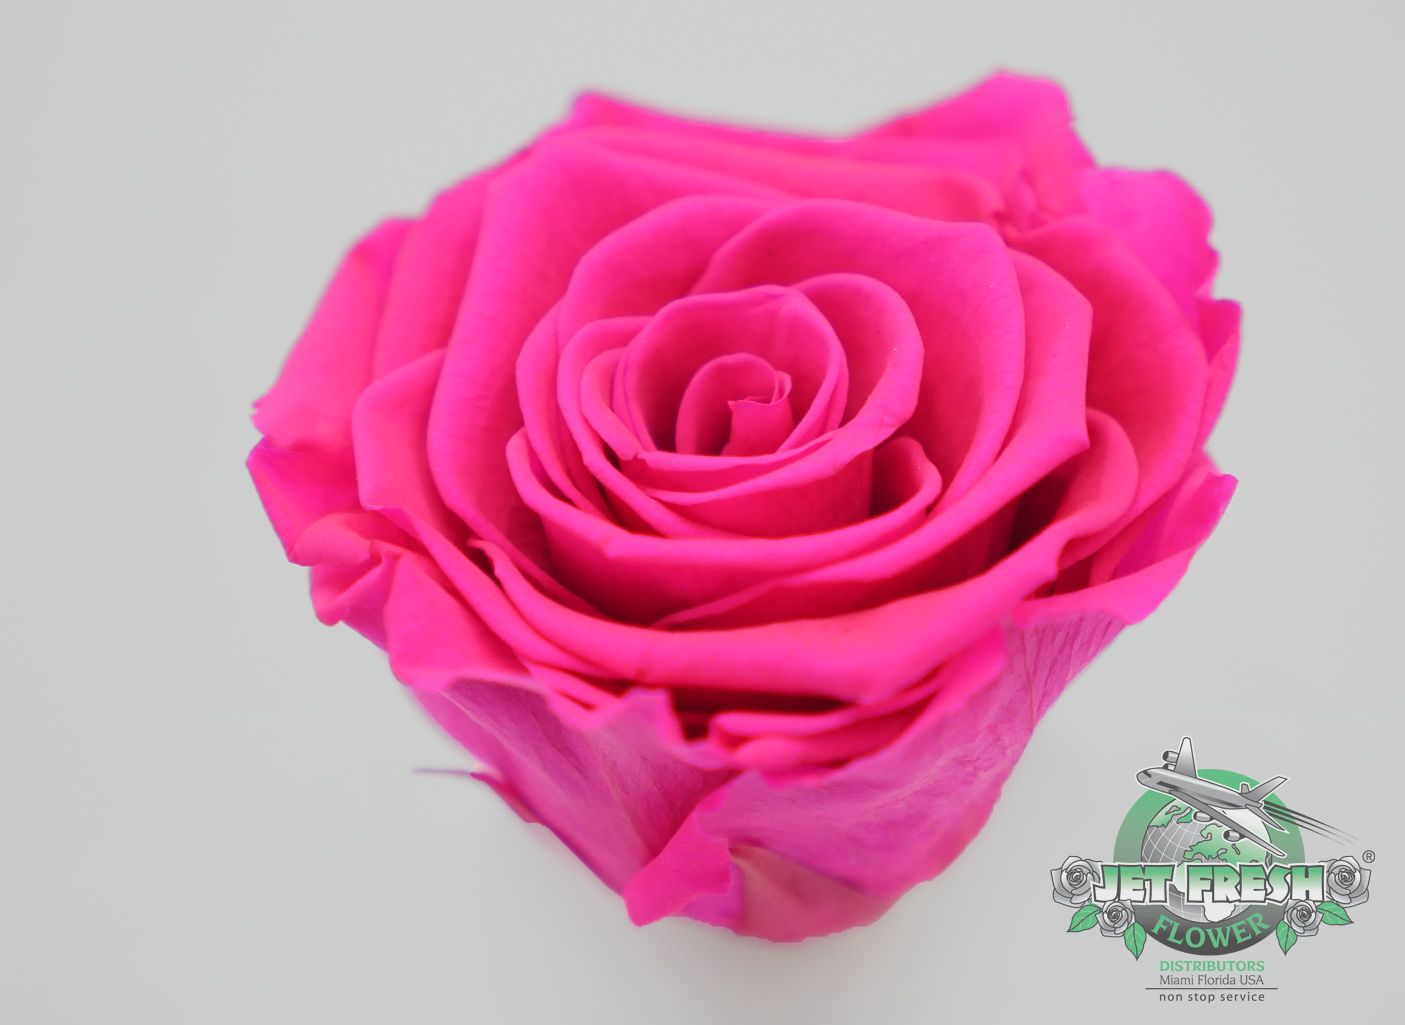 Up Close View At Jet Fresh S Hot Pink Preserved Roses This New Variety Is